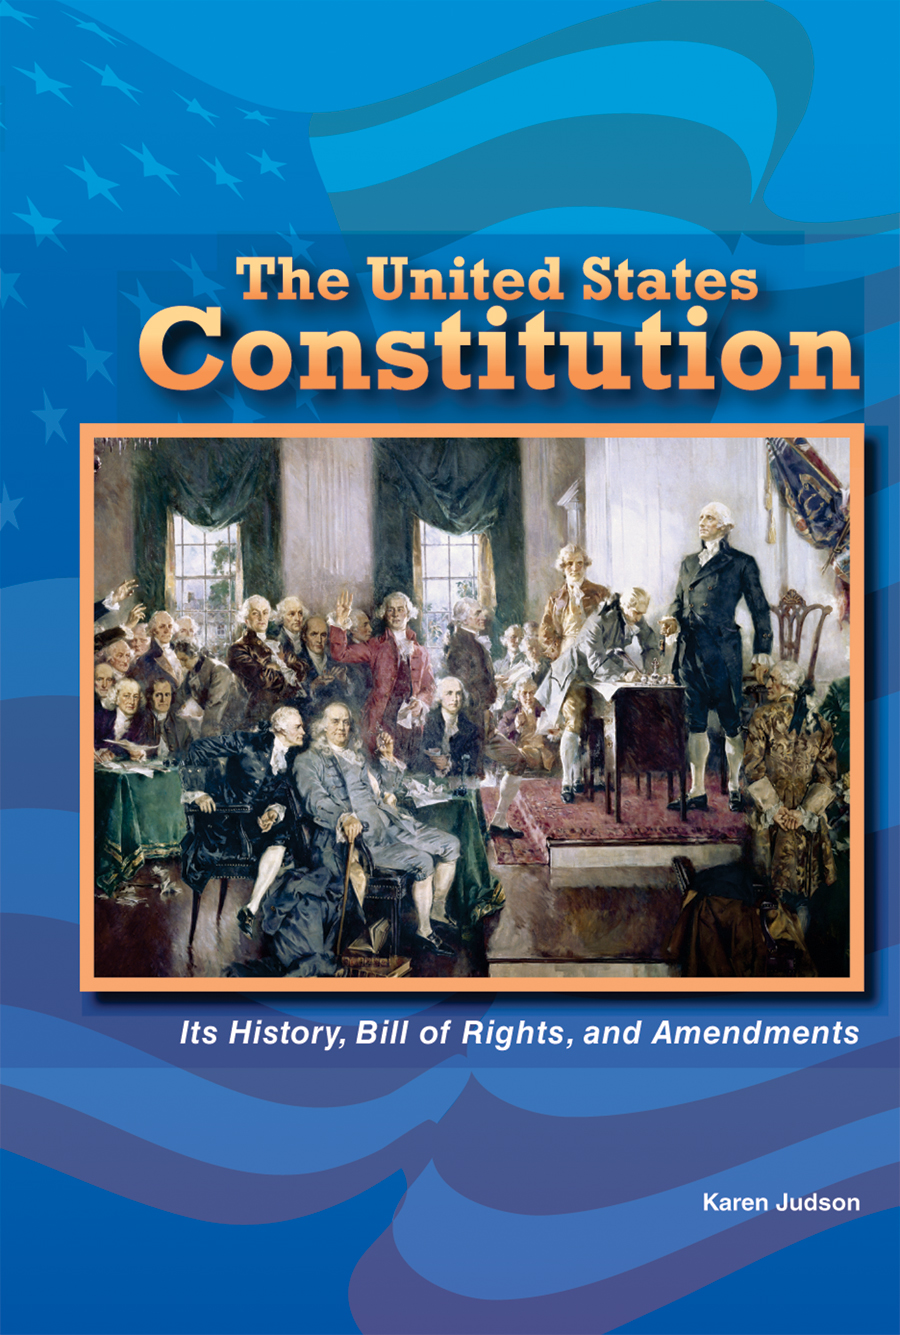 The United States Constitution: Its History, Bill of Rights, and Amendments